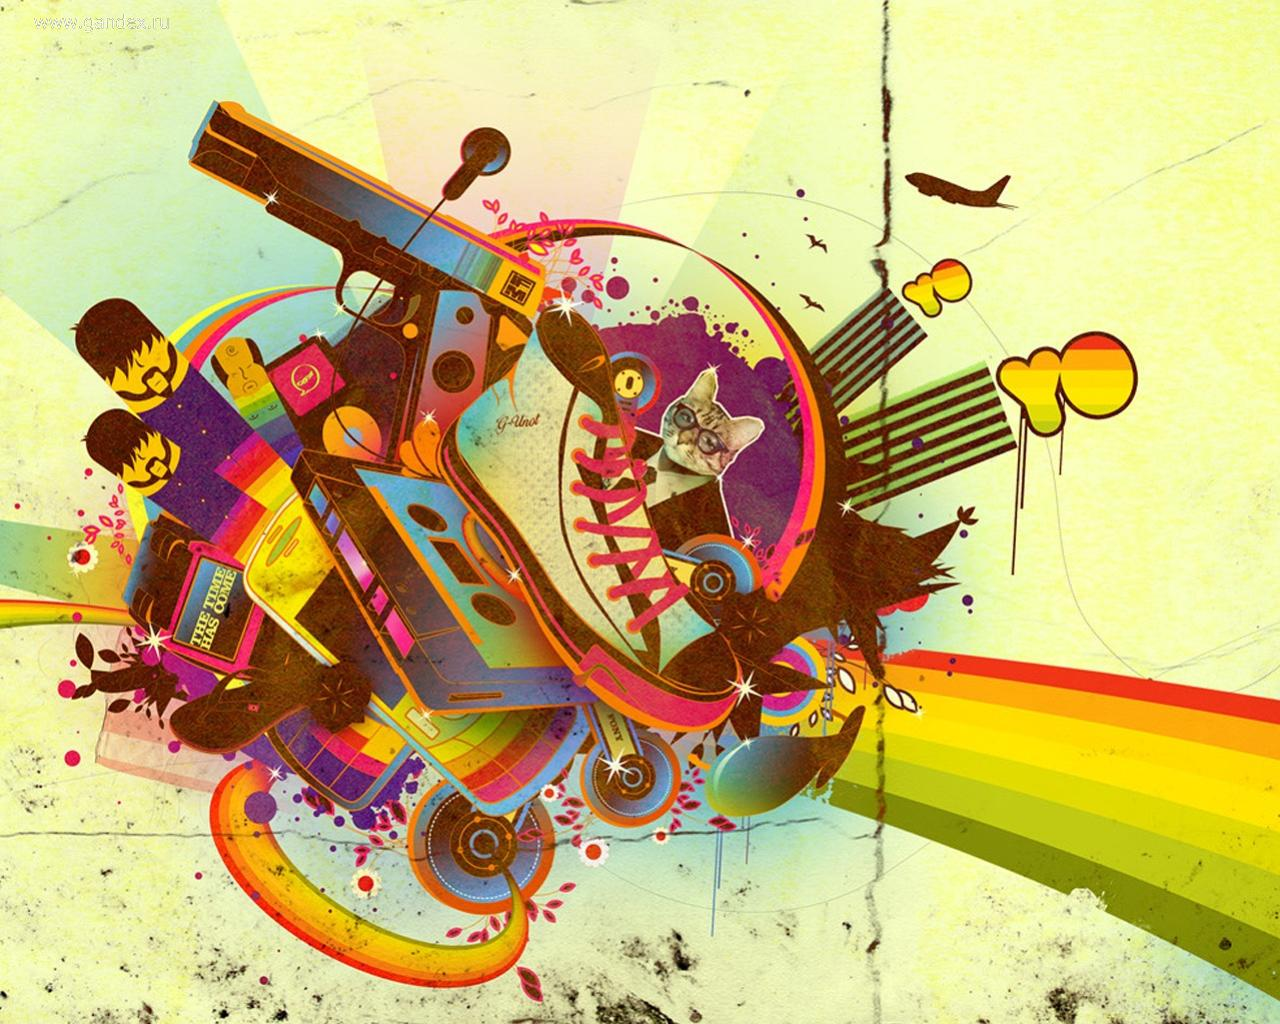 Full abstraction: gun, shoe, cat and everything all in one color picture.